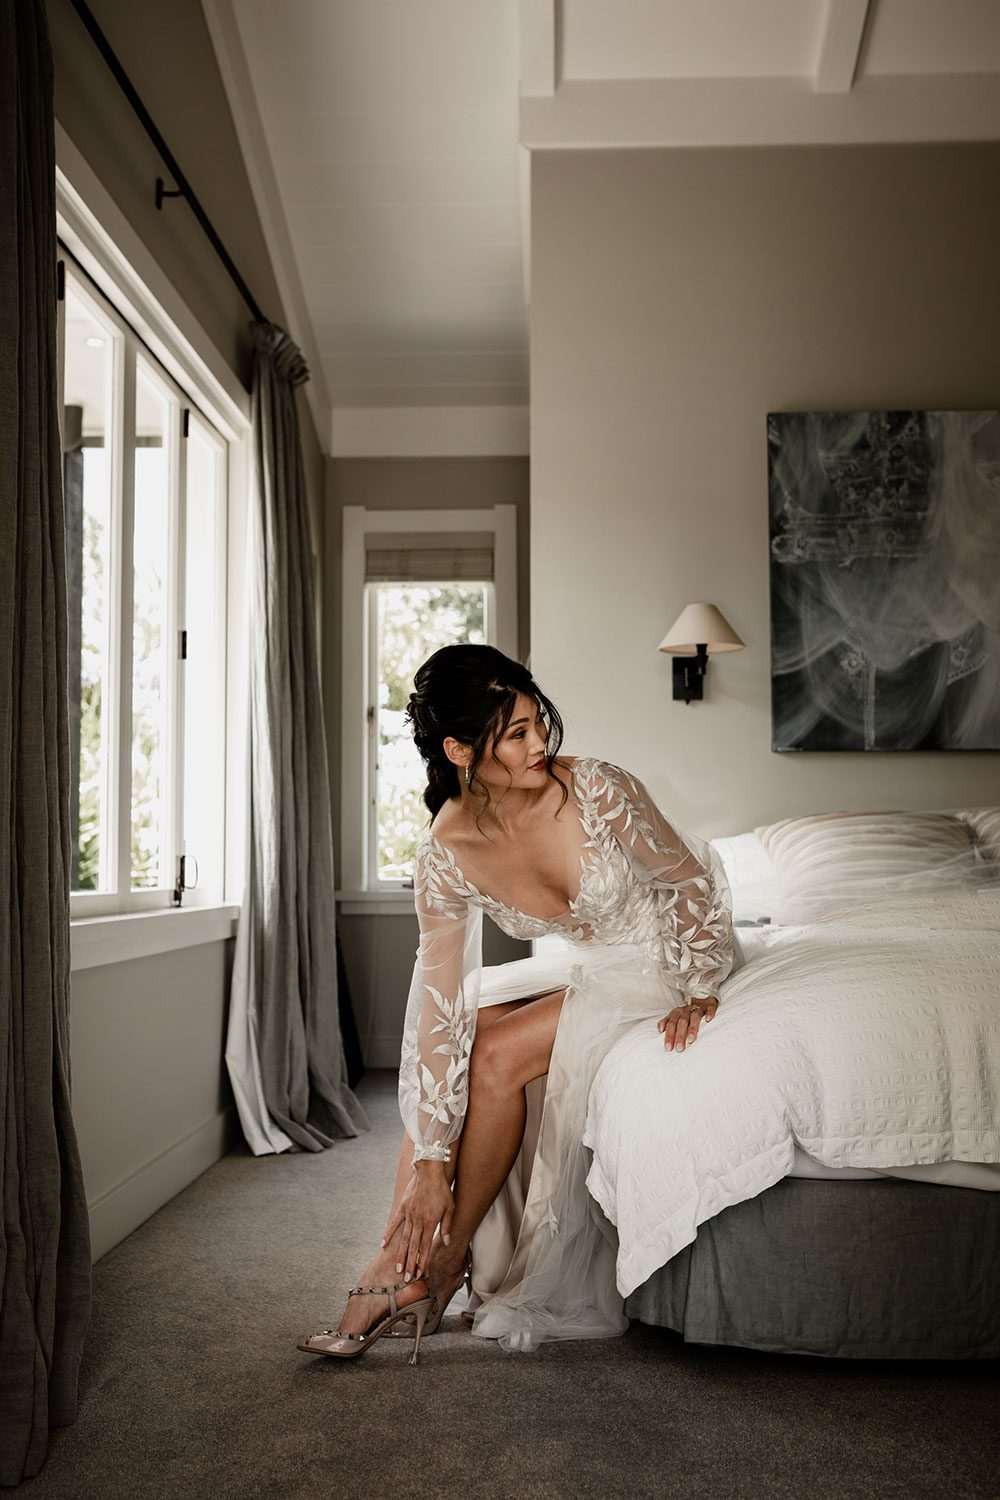 Bride wearing bespoke designer wedding dress by Vinka Bridal Boutique NZ, adorned with delicate applique lace and puffed sleeves - on bed